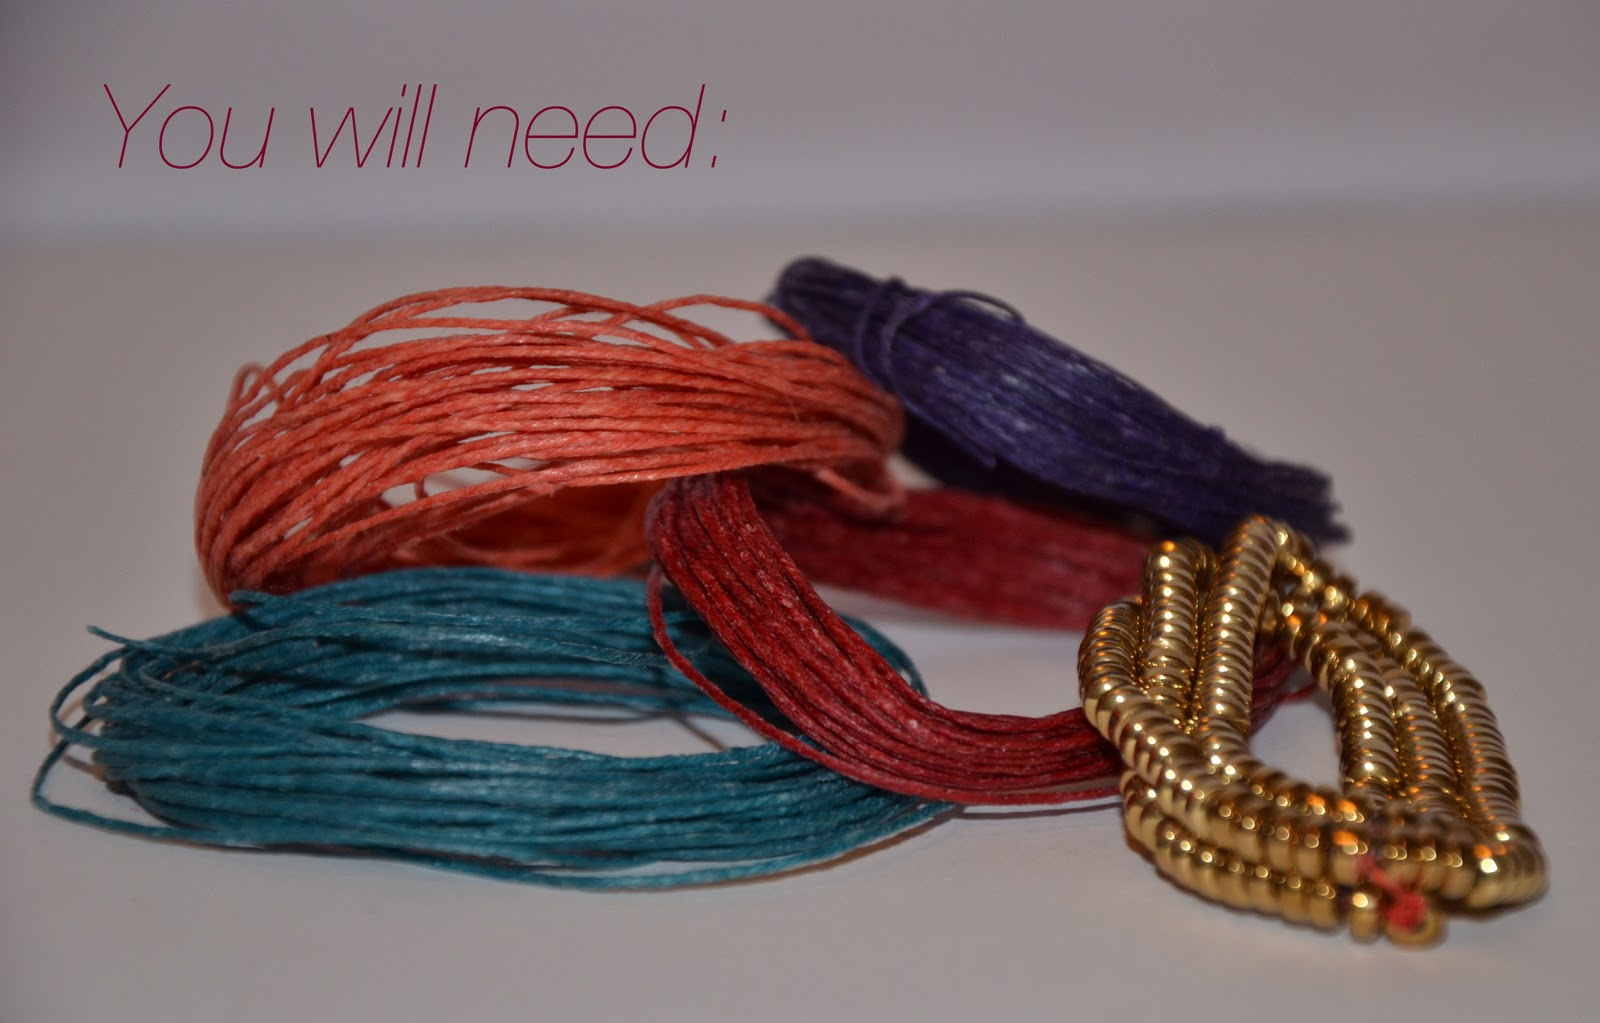 DIY Braided Bracelets